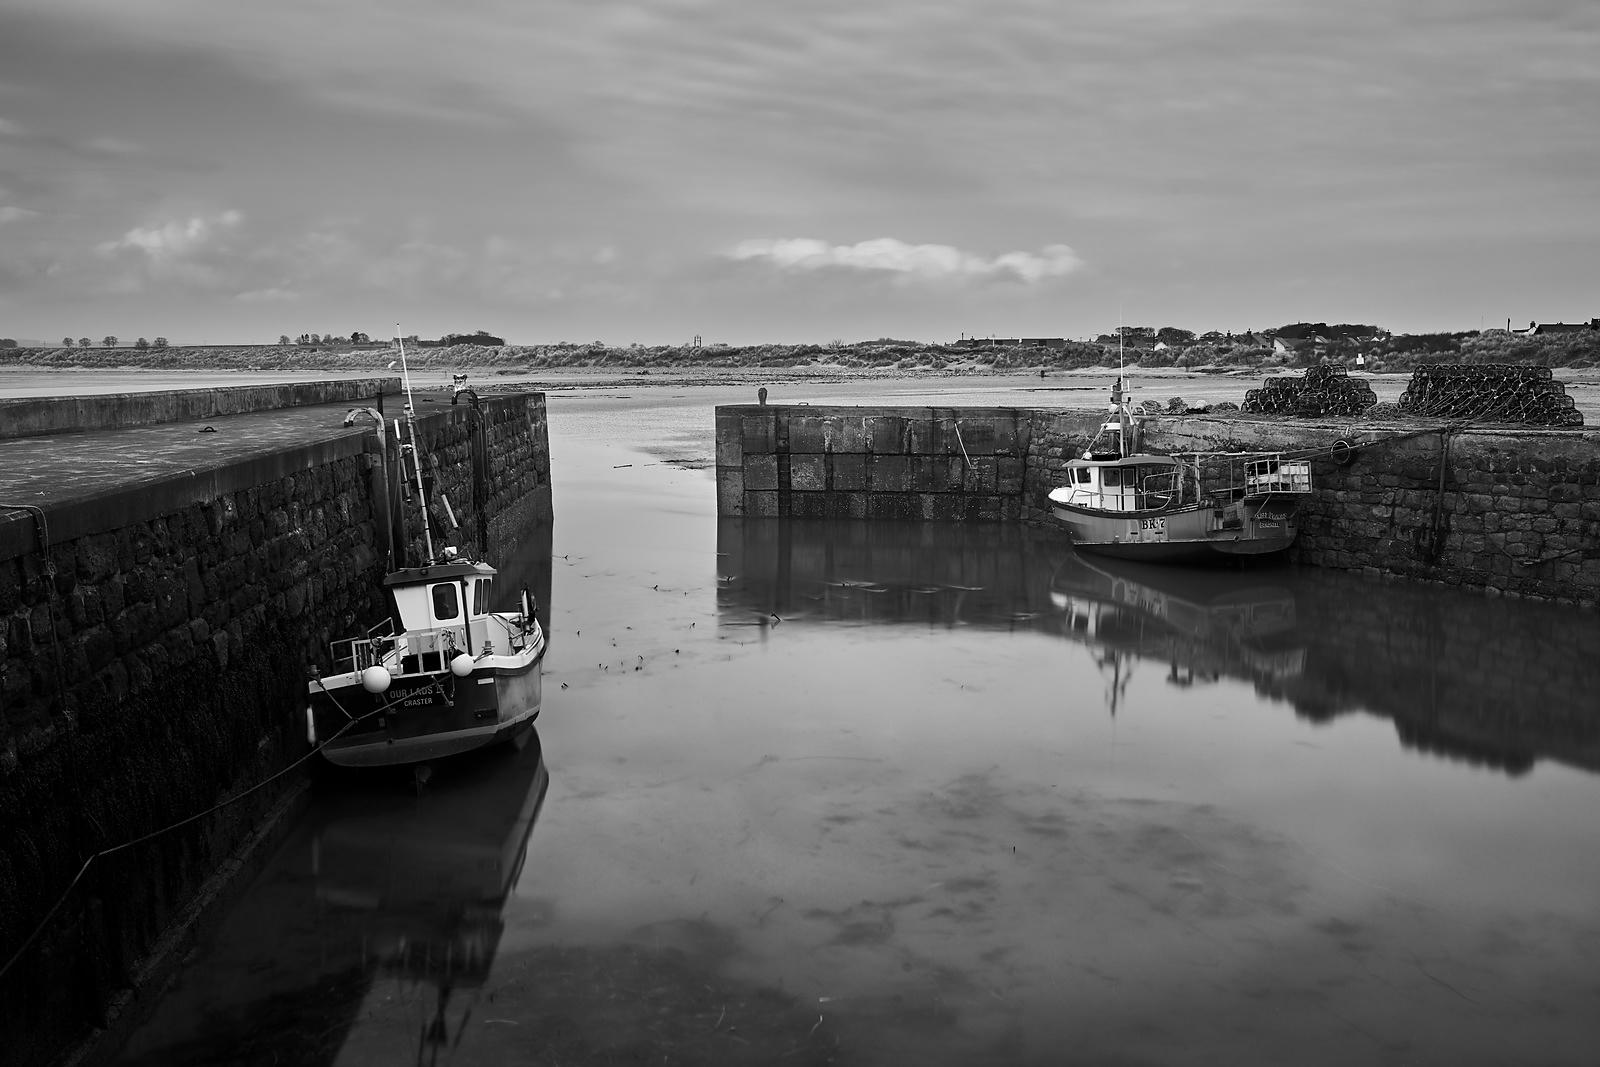 Boats in a harbour (B&W)